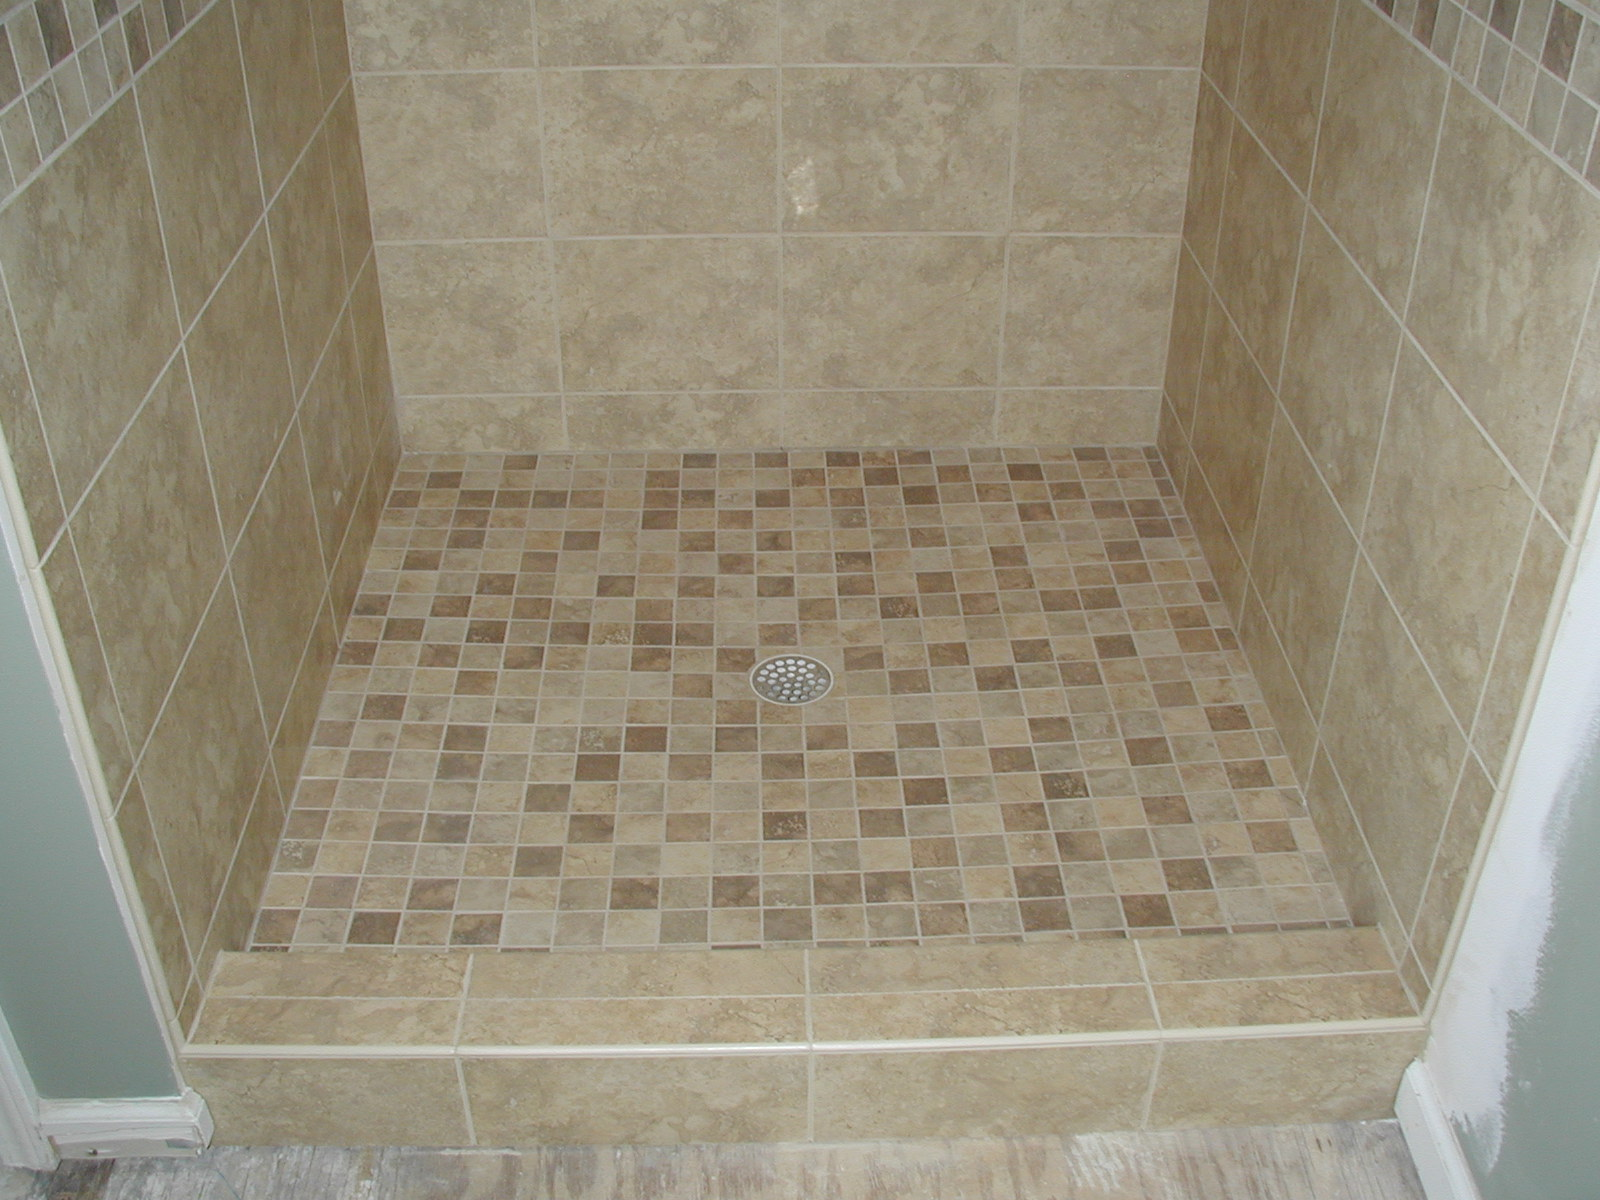 Cheme construction inc bathroom remodel Bathroom remodeling ideas shower stalls